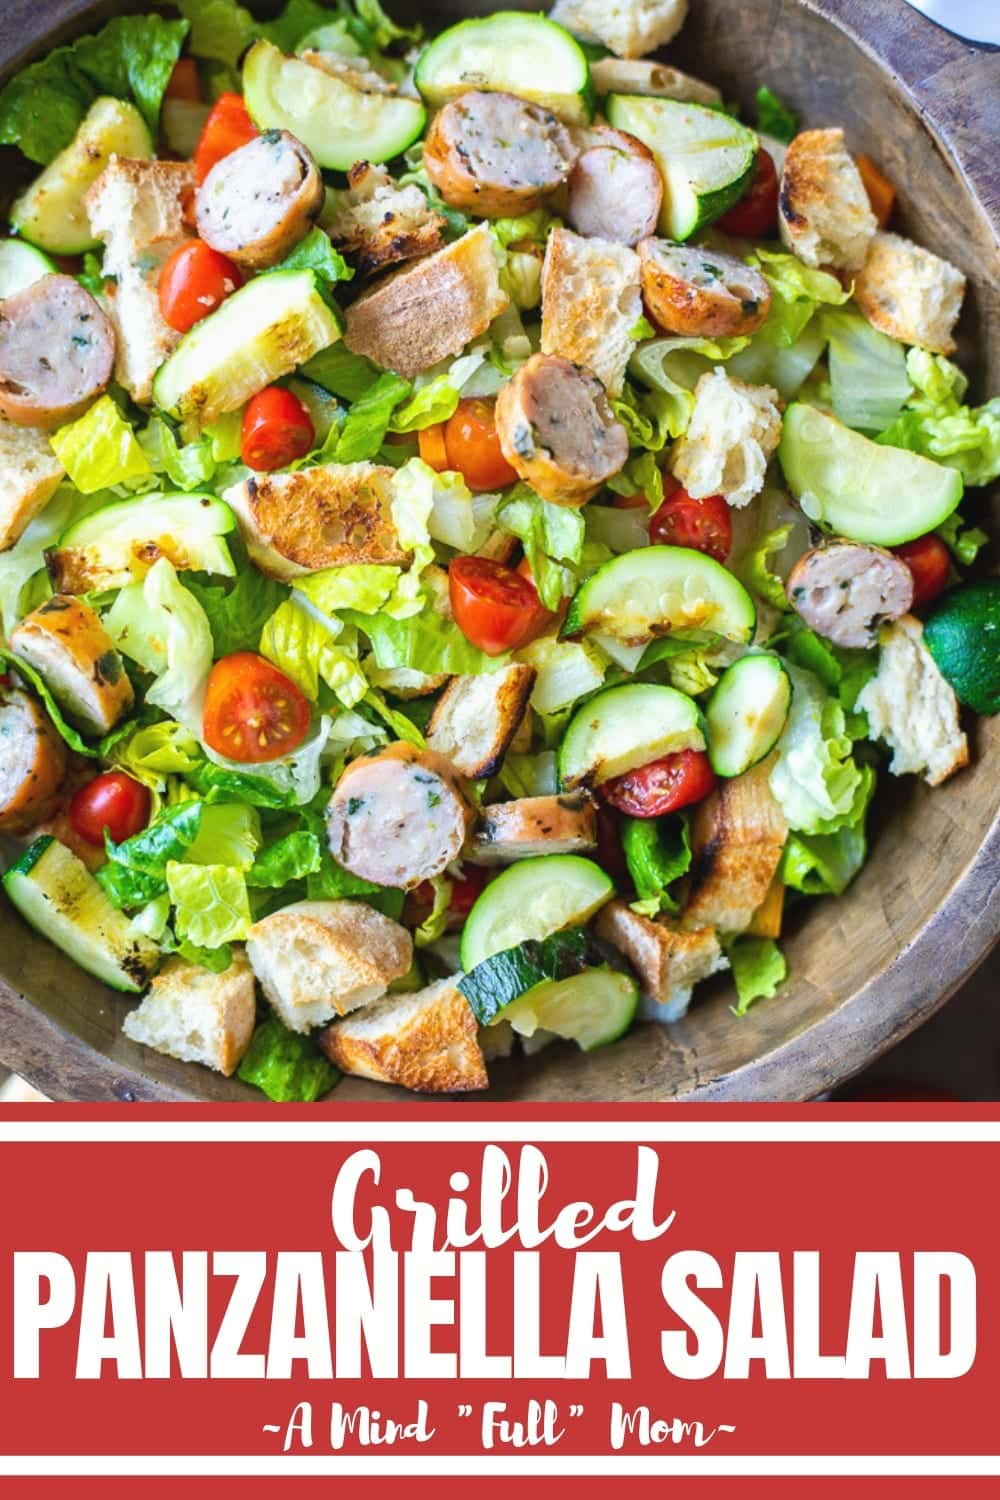 Grilled Panzanella Salad is a perfect family meal for the for the warmer months! Made with grilled veggies, hearty bread, chicken sausage, and a delicious vinaigrette, this easy Panzanella Salad with Chicken Sausage will fill your family up without weighing them down!